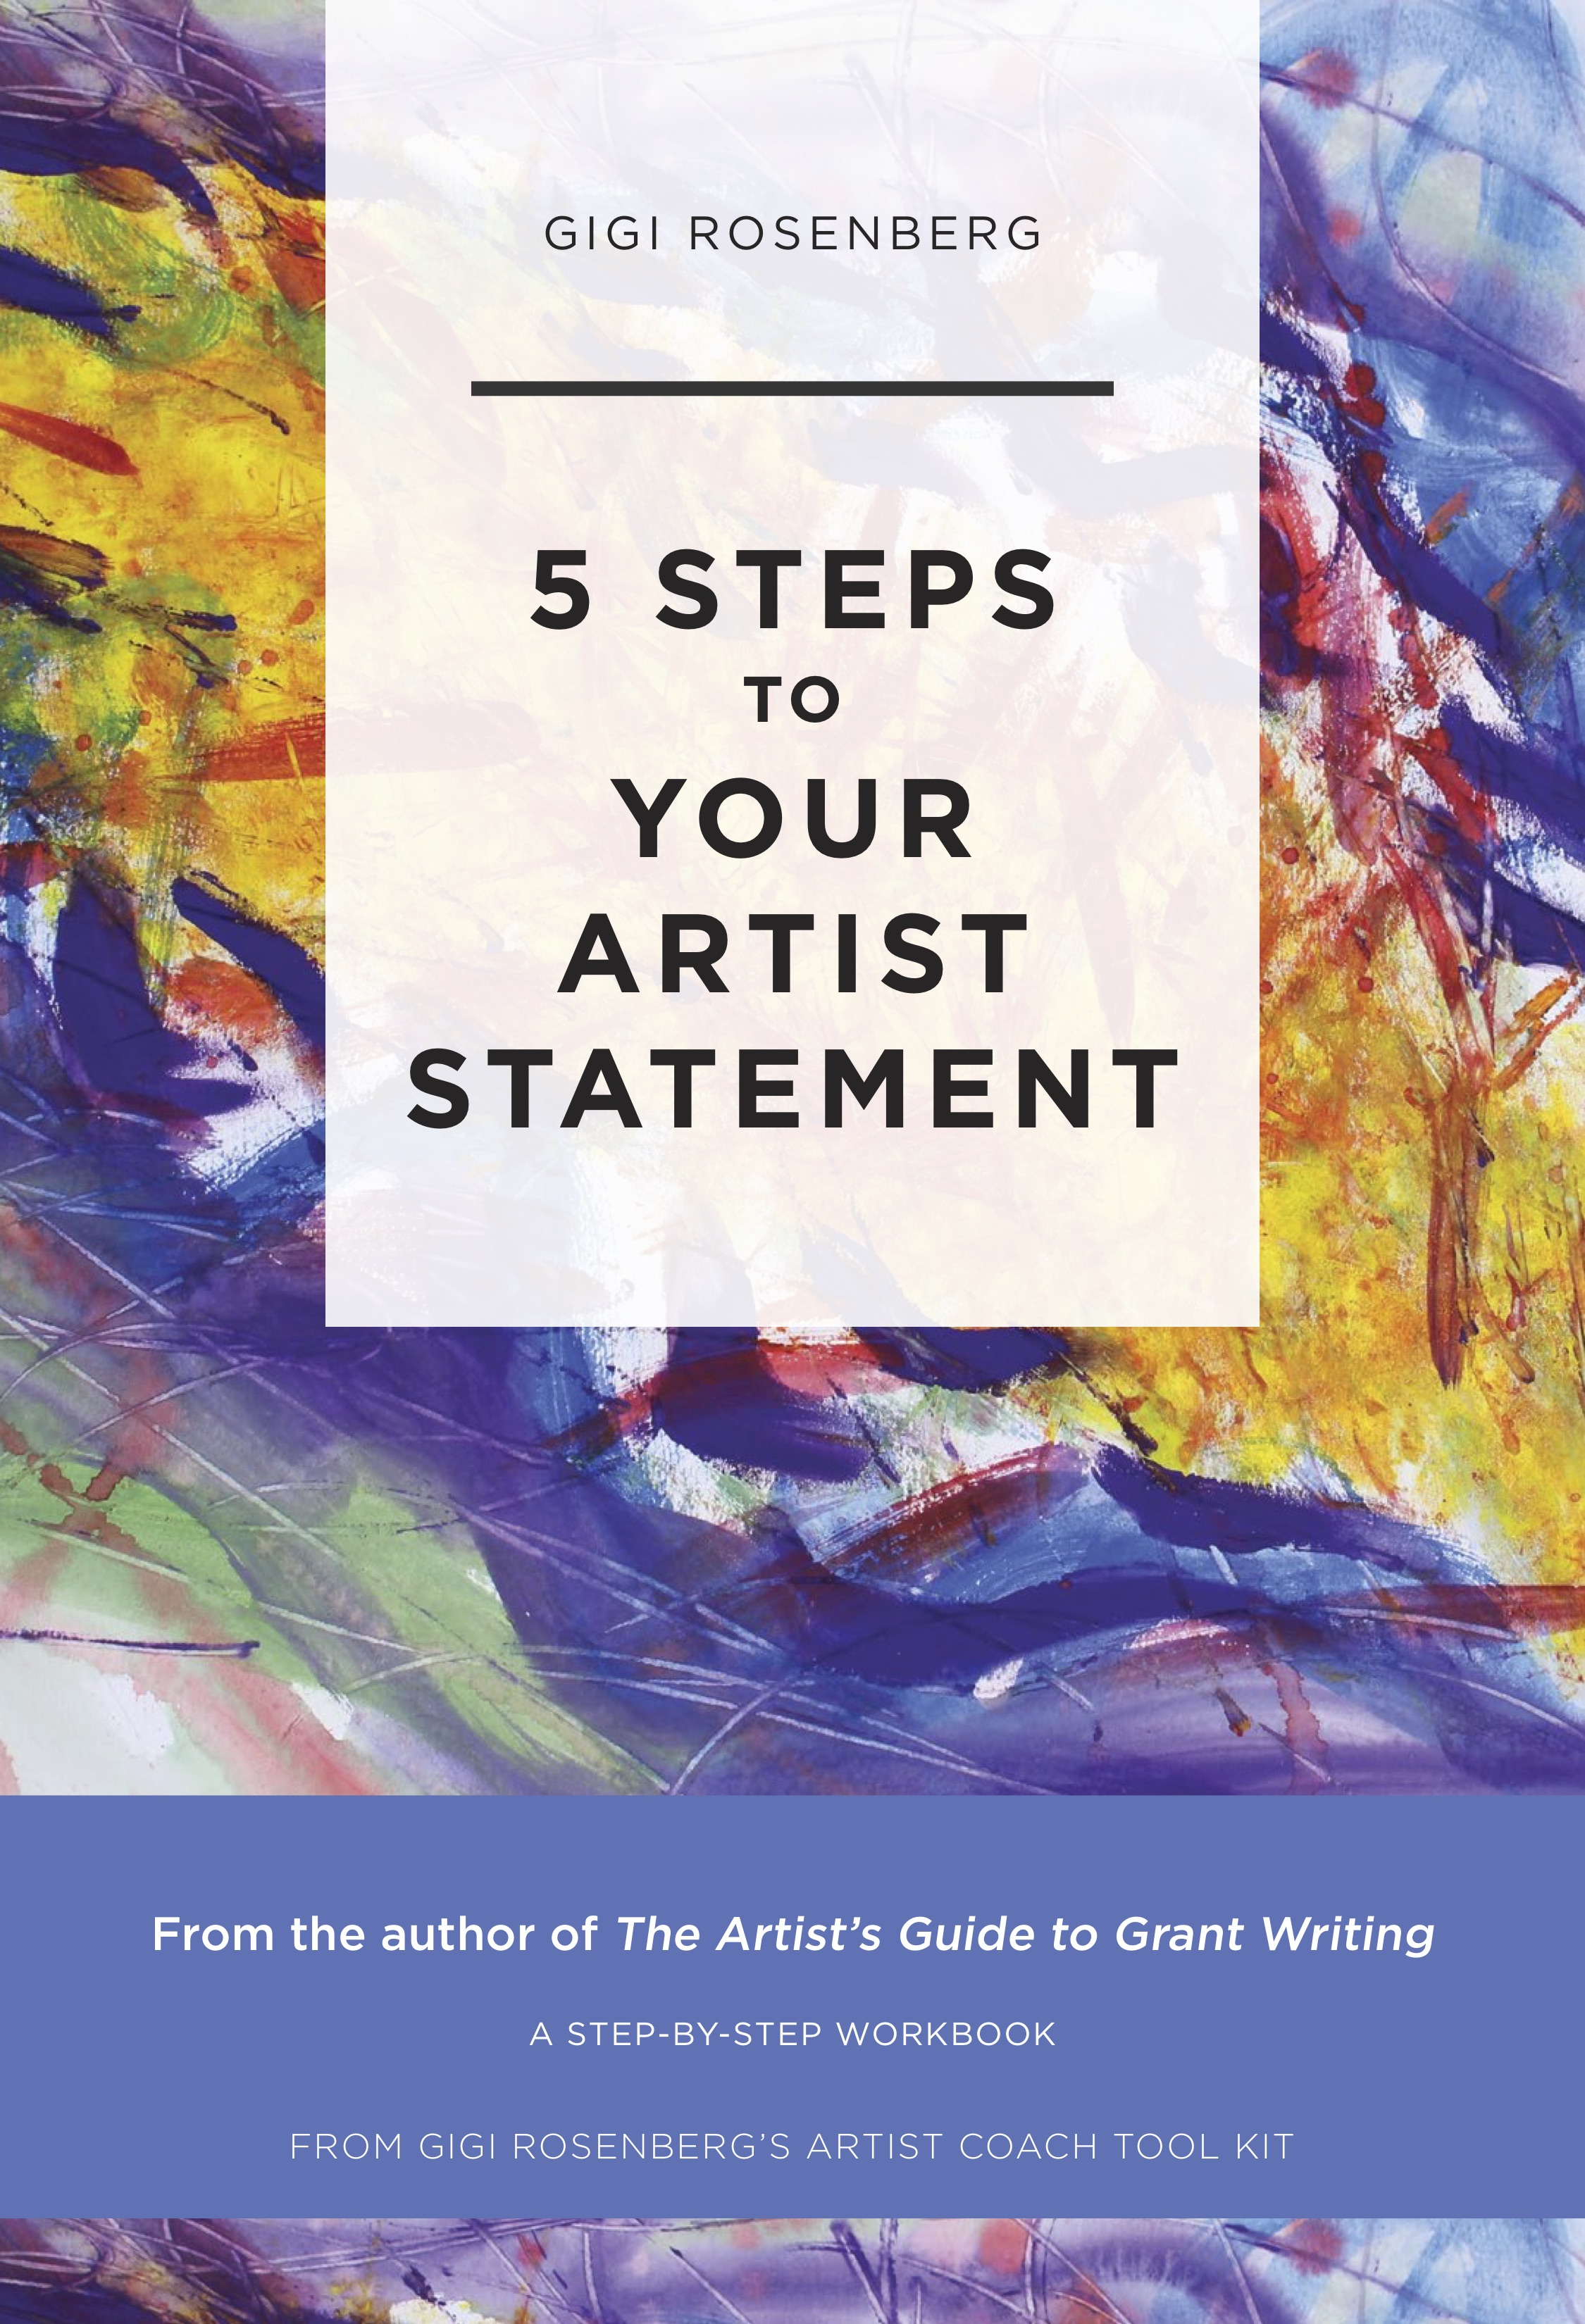 5_Steps_To_Your_Artist_Statement_By_Gigi_Rosenberg.jpg